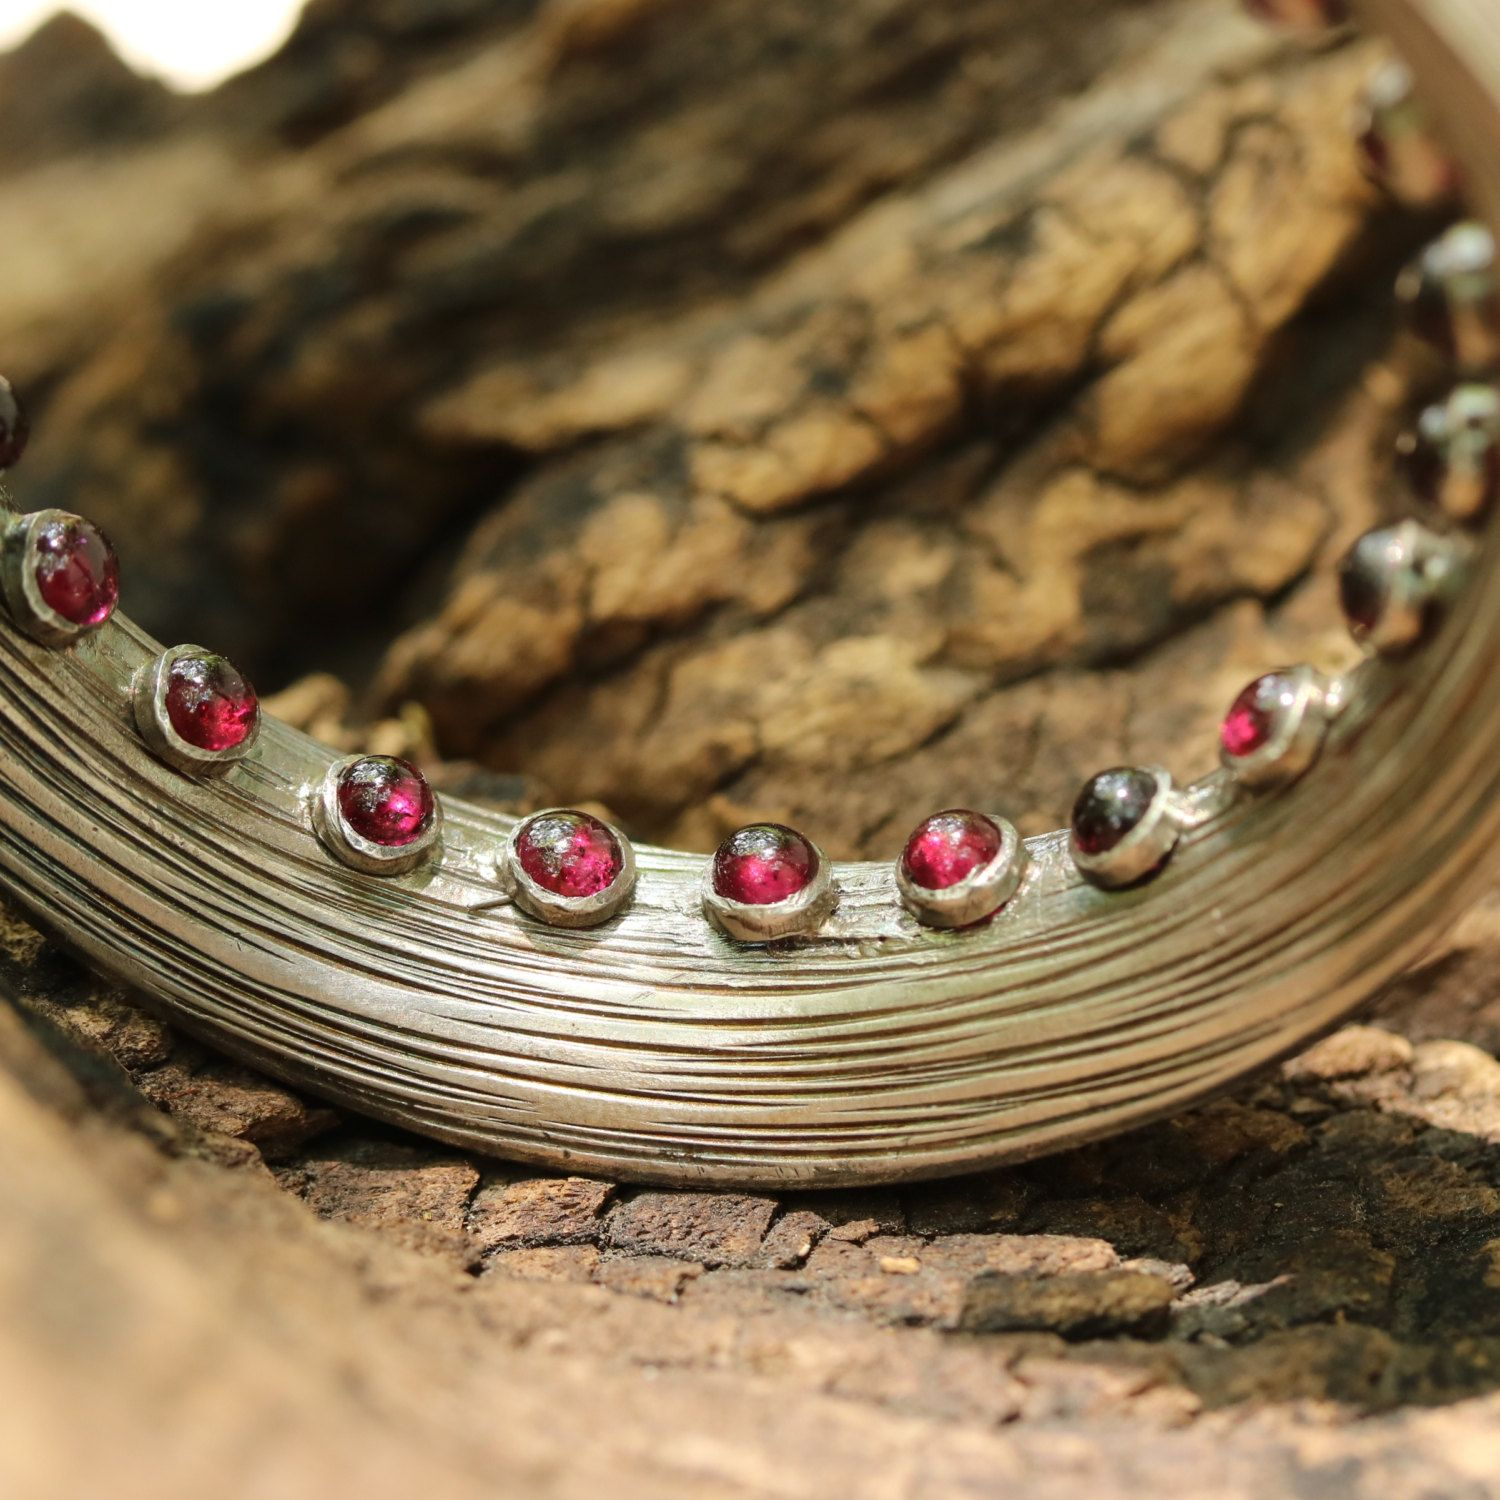 Silver cuff bangle bracelet with garnet cabochons set inside the bangle